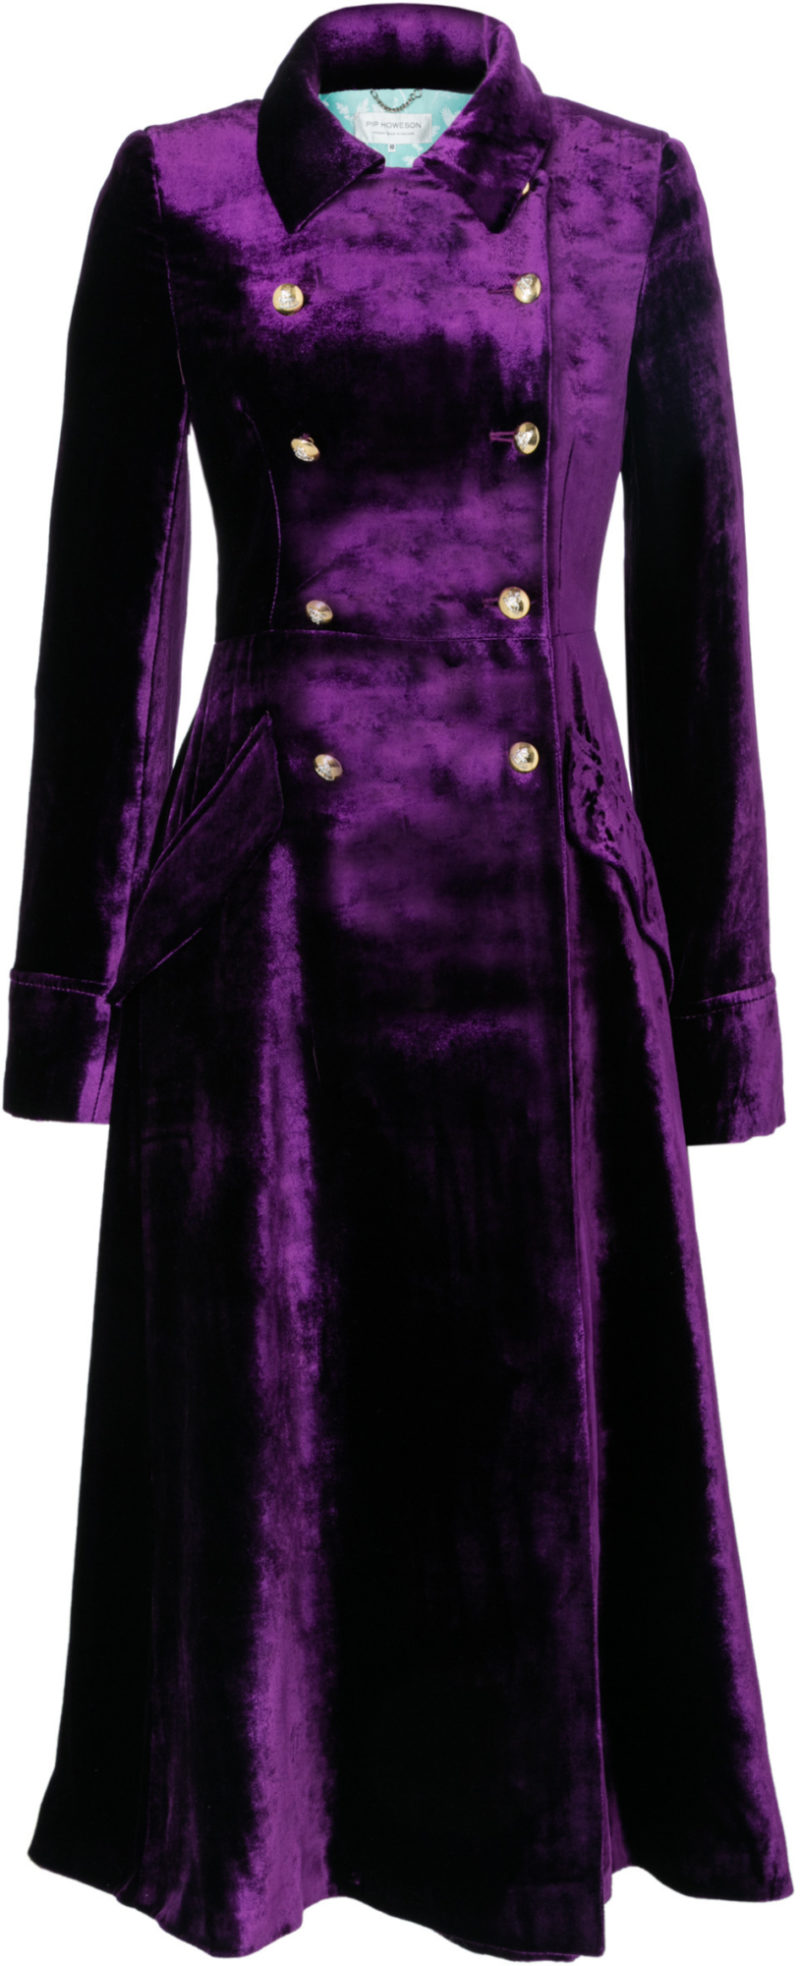 Pip Howeson Cozmo Coat Front